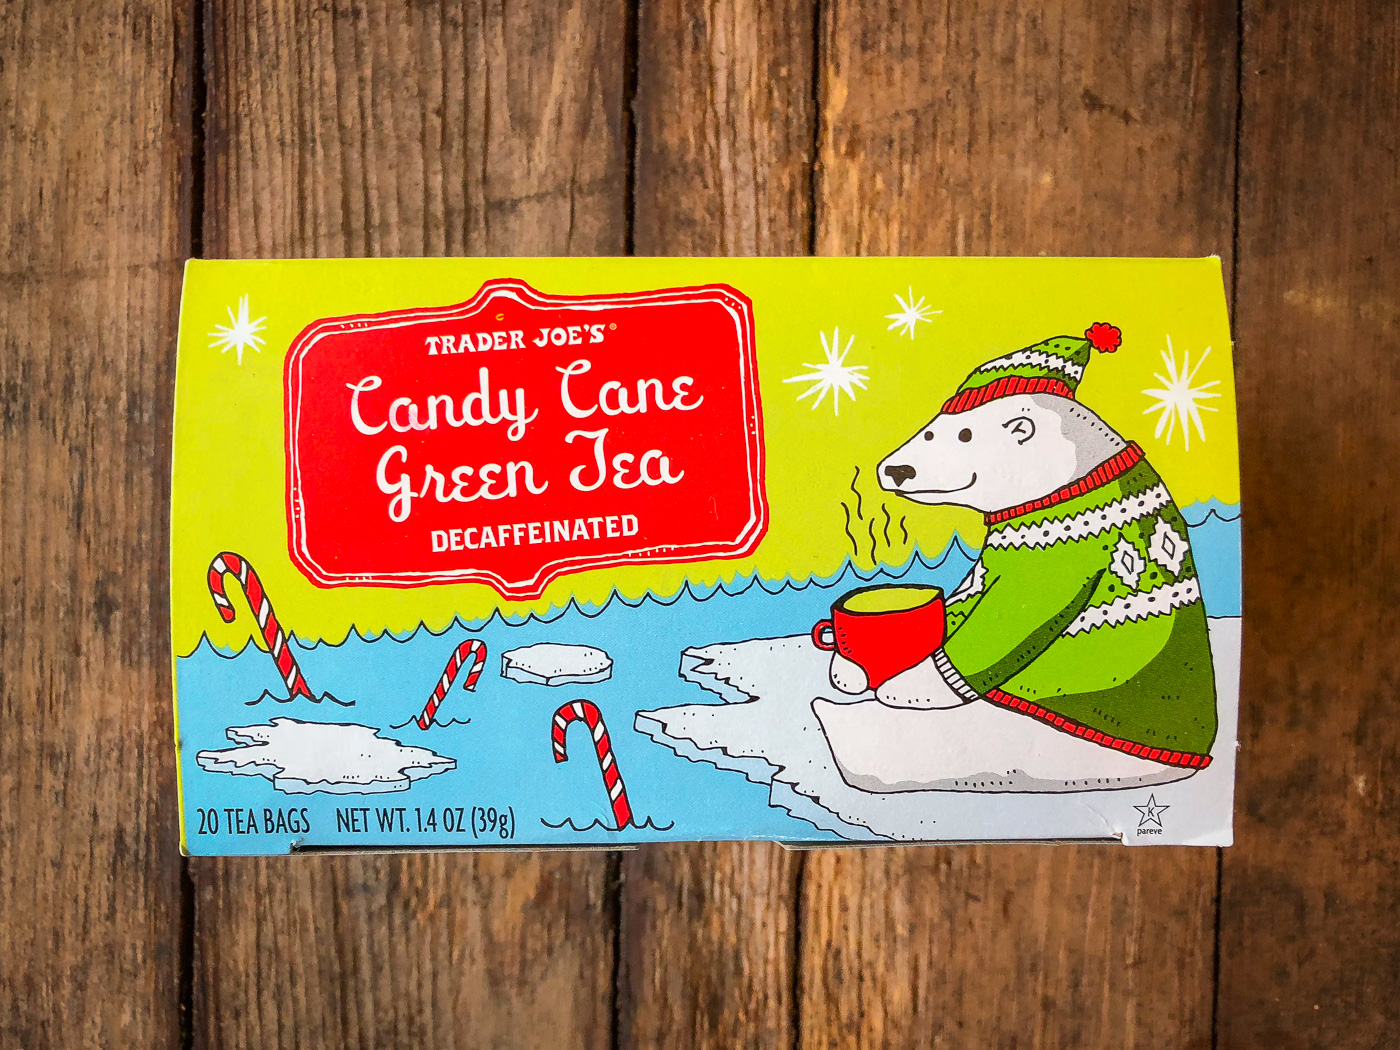 Box of Trader Joe's Candy Cane Green Tea tea bags